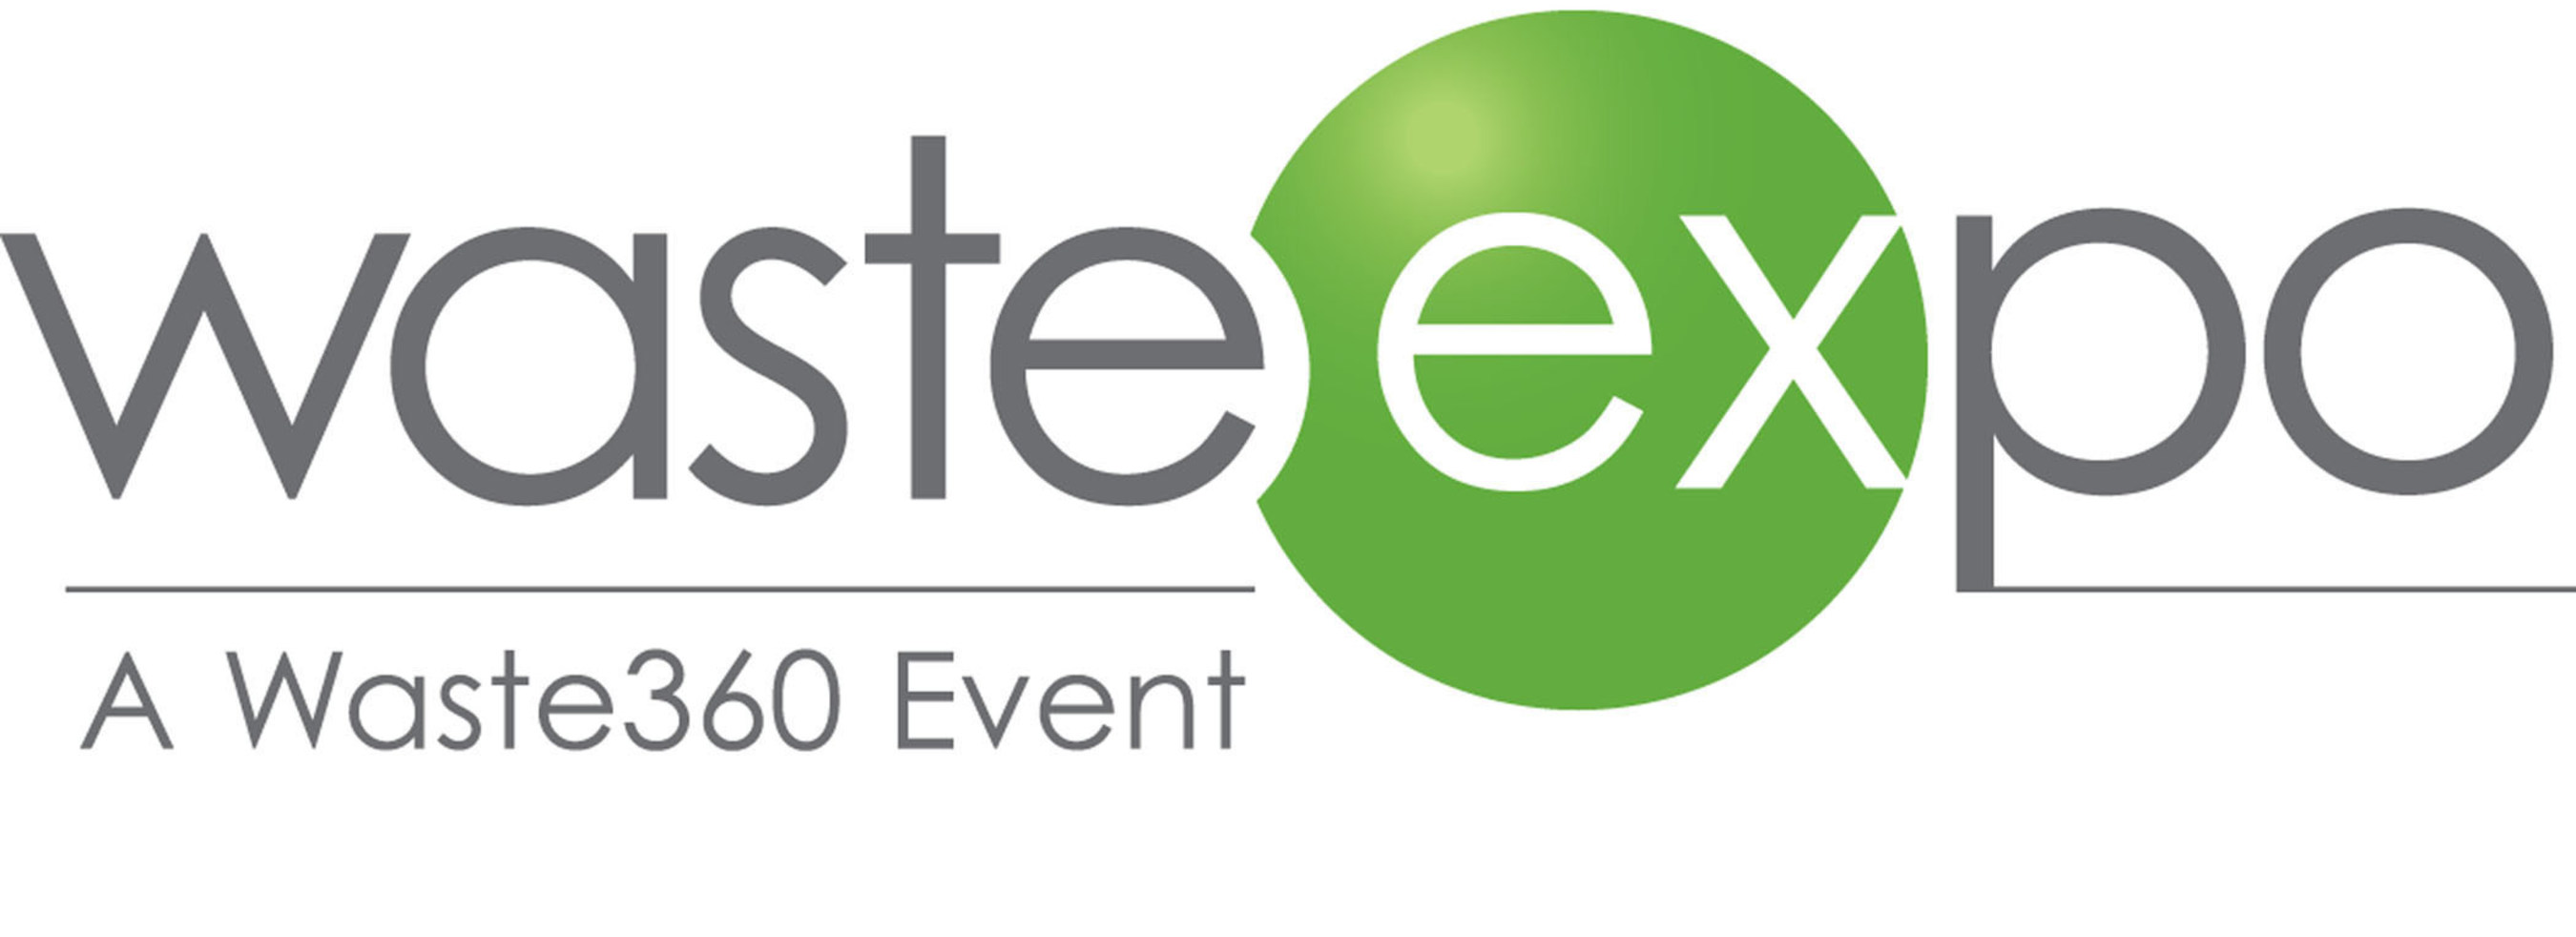 Penton's WasteExpo, the Largest Solid Waste, Recycling and Organics Industry Event, Brings the